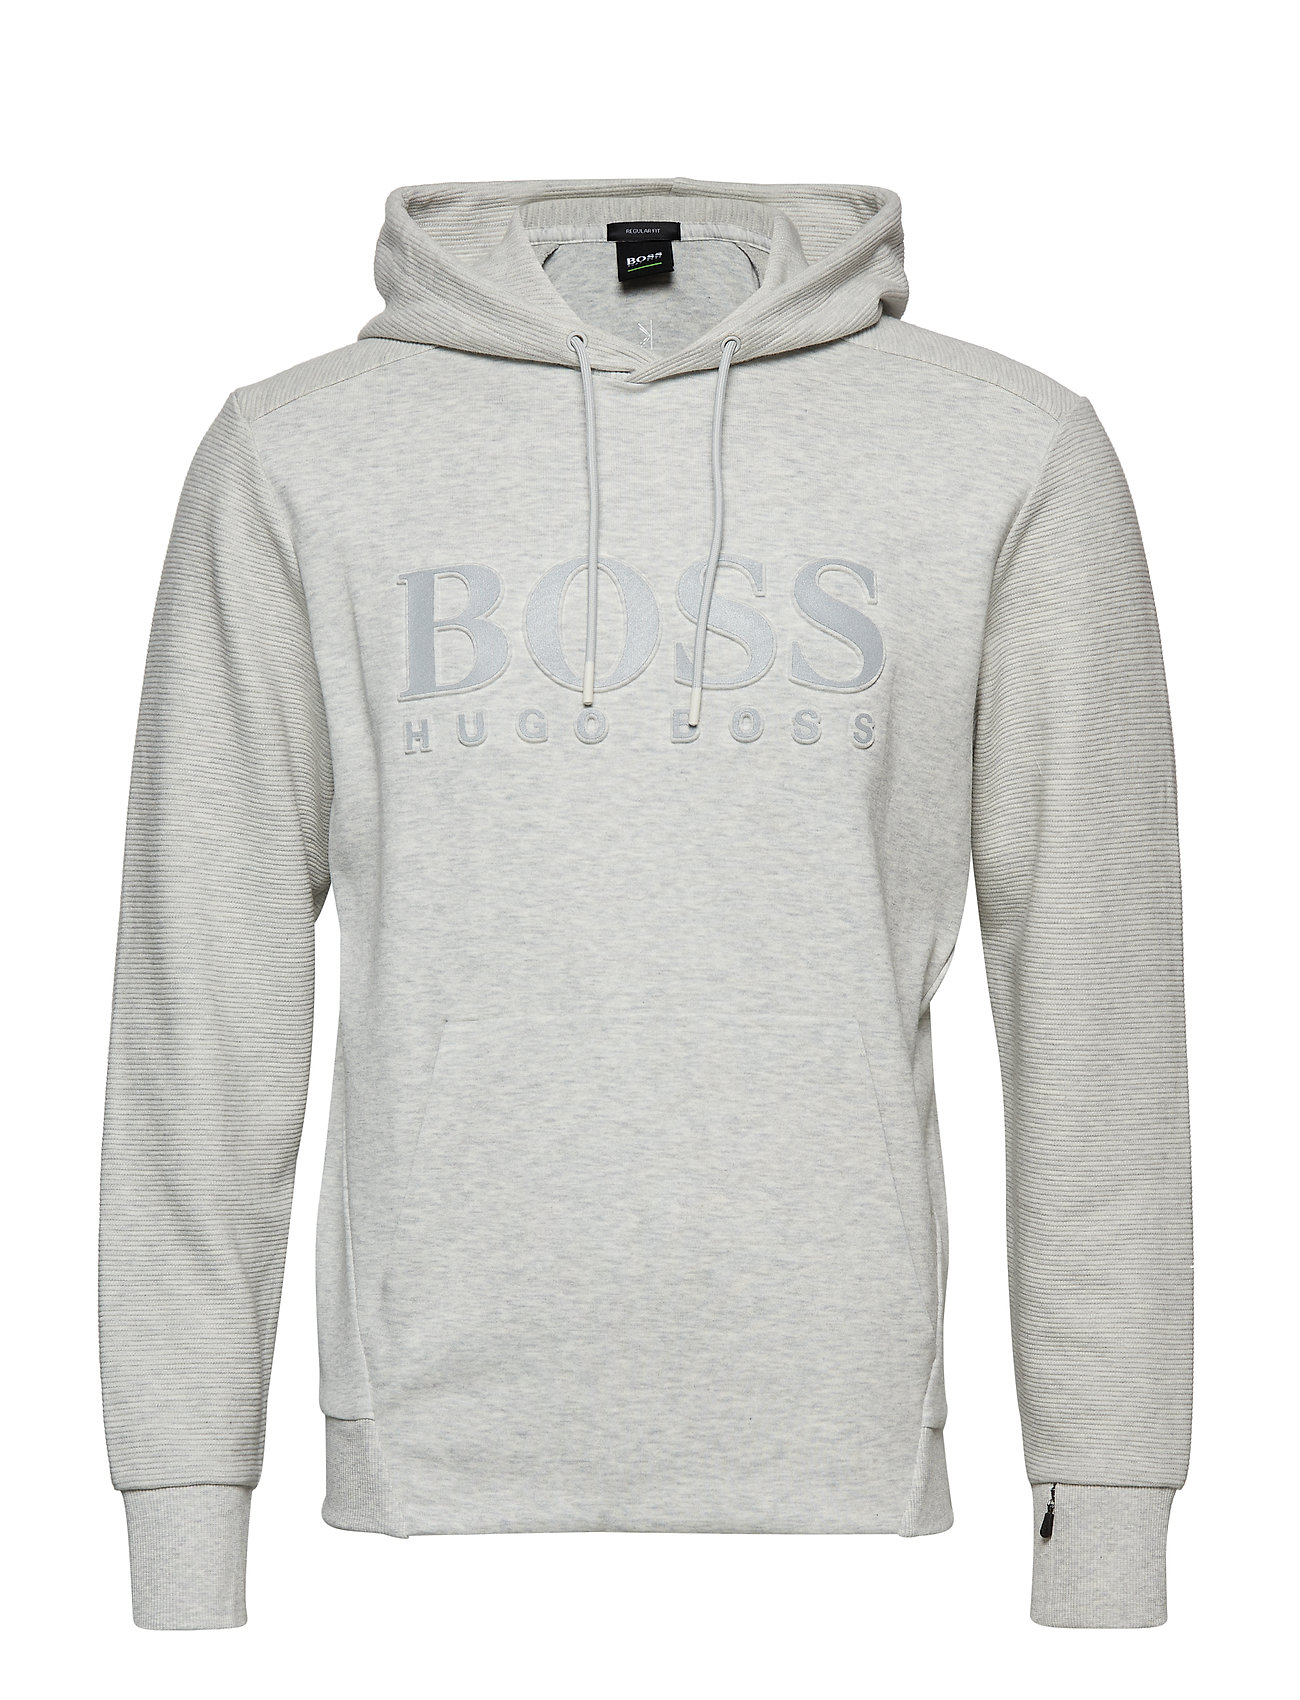 Soody - Boss Athleisure Wear